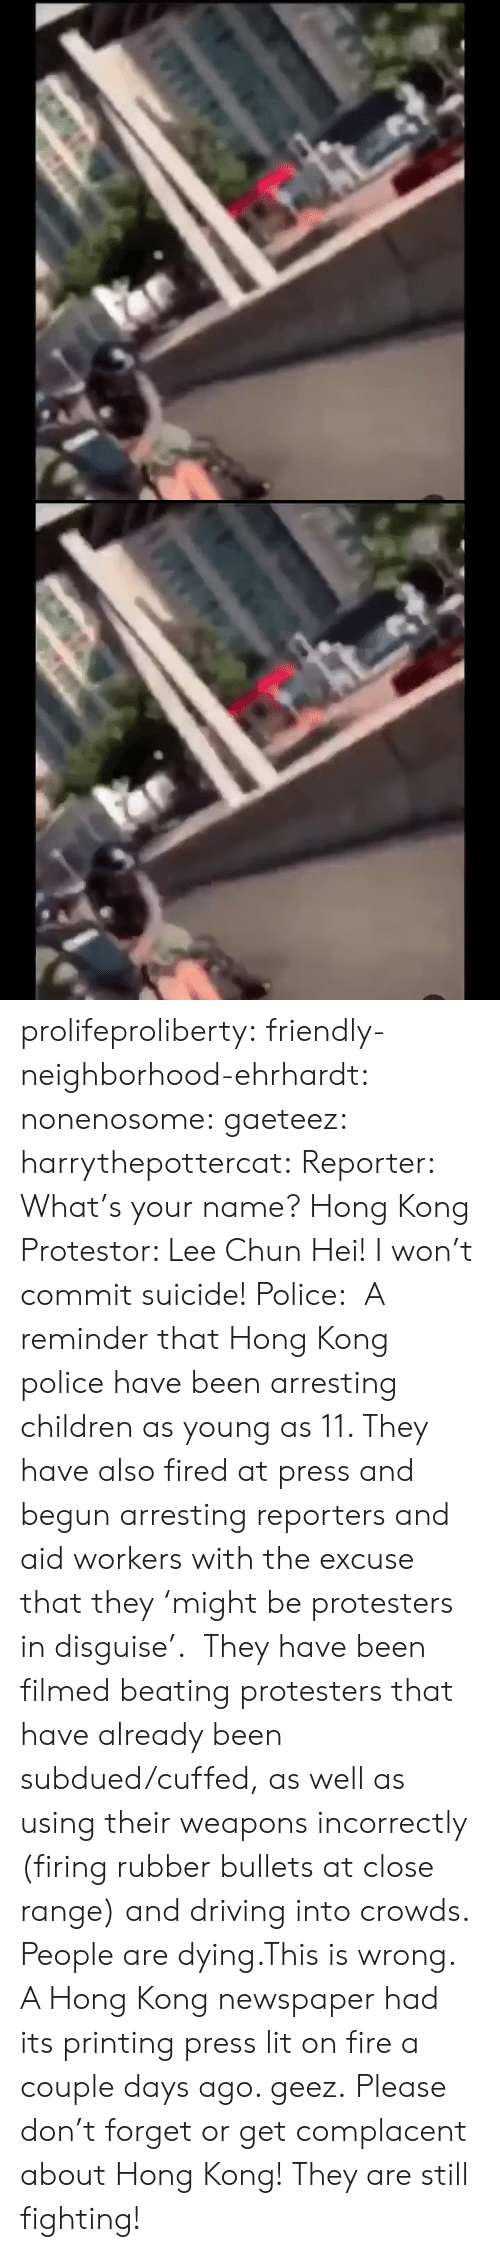 Children, Driving, and Fire: के.  ॥ल prolifeproliberty:  friendly-neighborhood-ehrhardt:  nonenosome:  gaeteez:   harrythepottercat:  Reporter: What's your name? Hong Kong Protestor: Lee Chun Hei! I won't commit suicide! Police:    A reminder that Hong Kong police have been arresting children as young as 11. They have also fired at press and begun arresting reporters and aid workers with the excuse that they 'might be protesters in disguise'.  They have been filmed beating protesters that have already been subdued/cuffed, as well as using their weapons incorrectly (firing rubber bullets at close range) and driving into crowds.  People are dying.This is wrong.    A Hong Kong newspaper had its printing press lit on fire a couple days ago.   geez.   Please don't forget or get complacent about Hong Kong! They are still fighting!